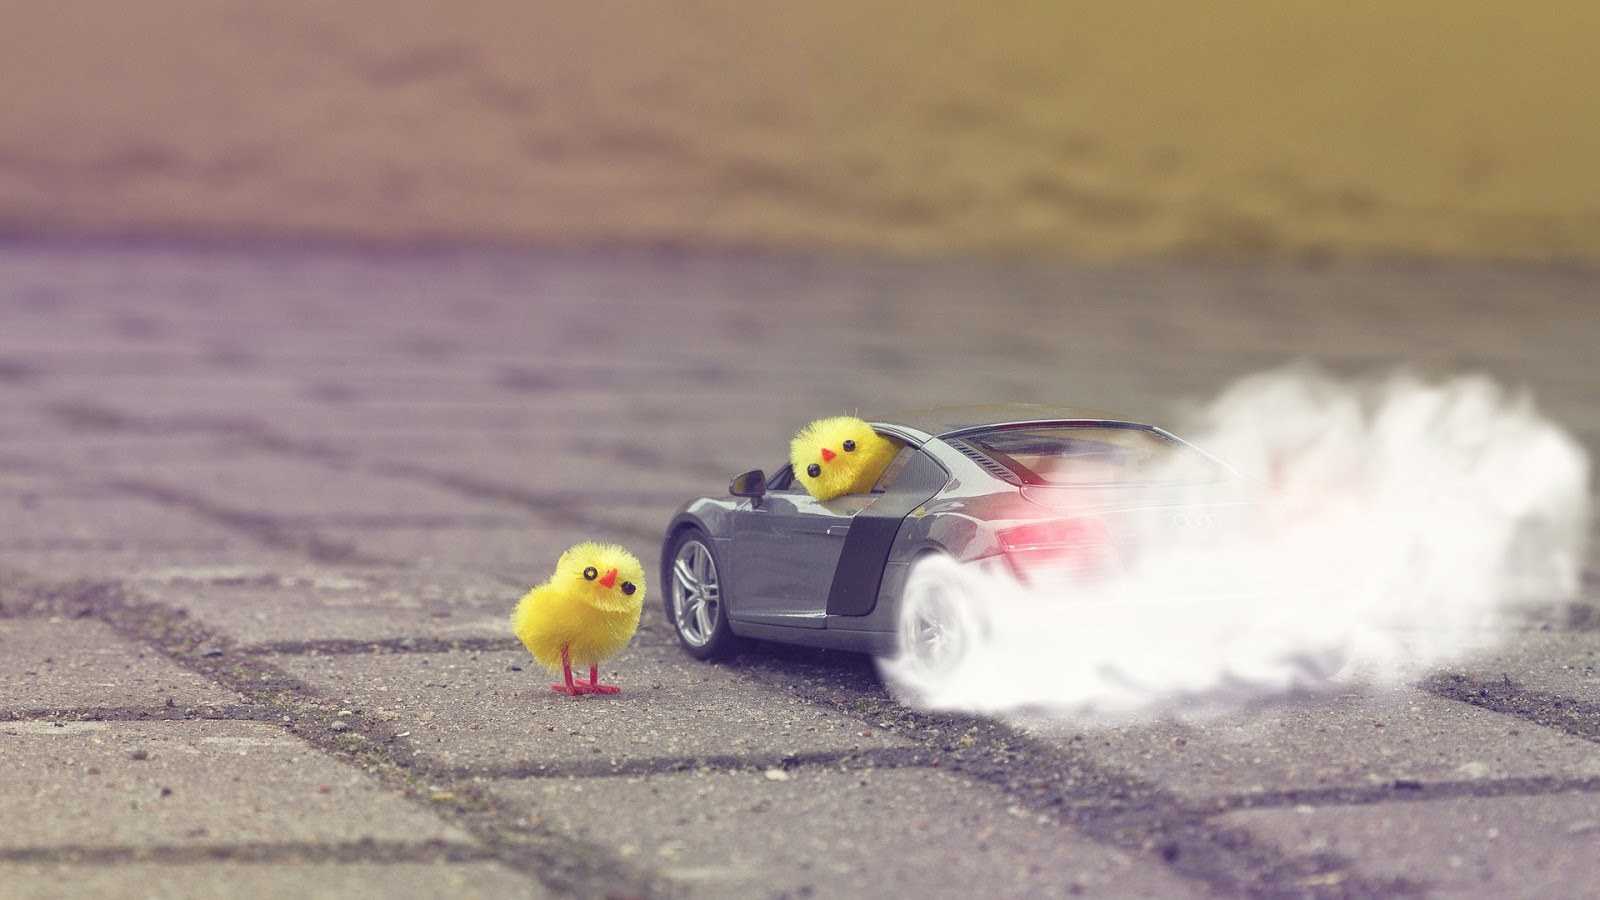 Chicken Toys Drift Car   Best Wallpapers 1600x900